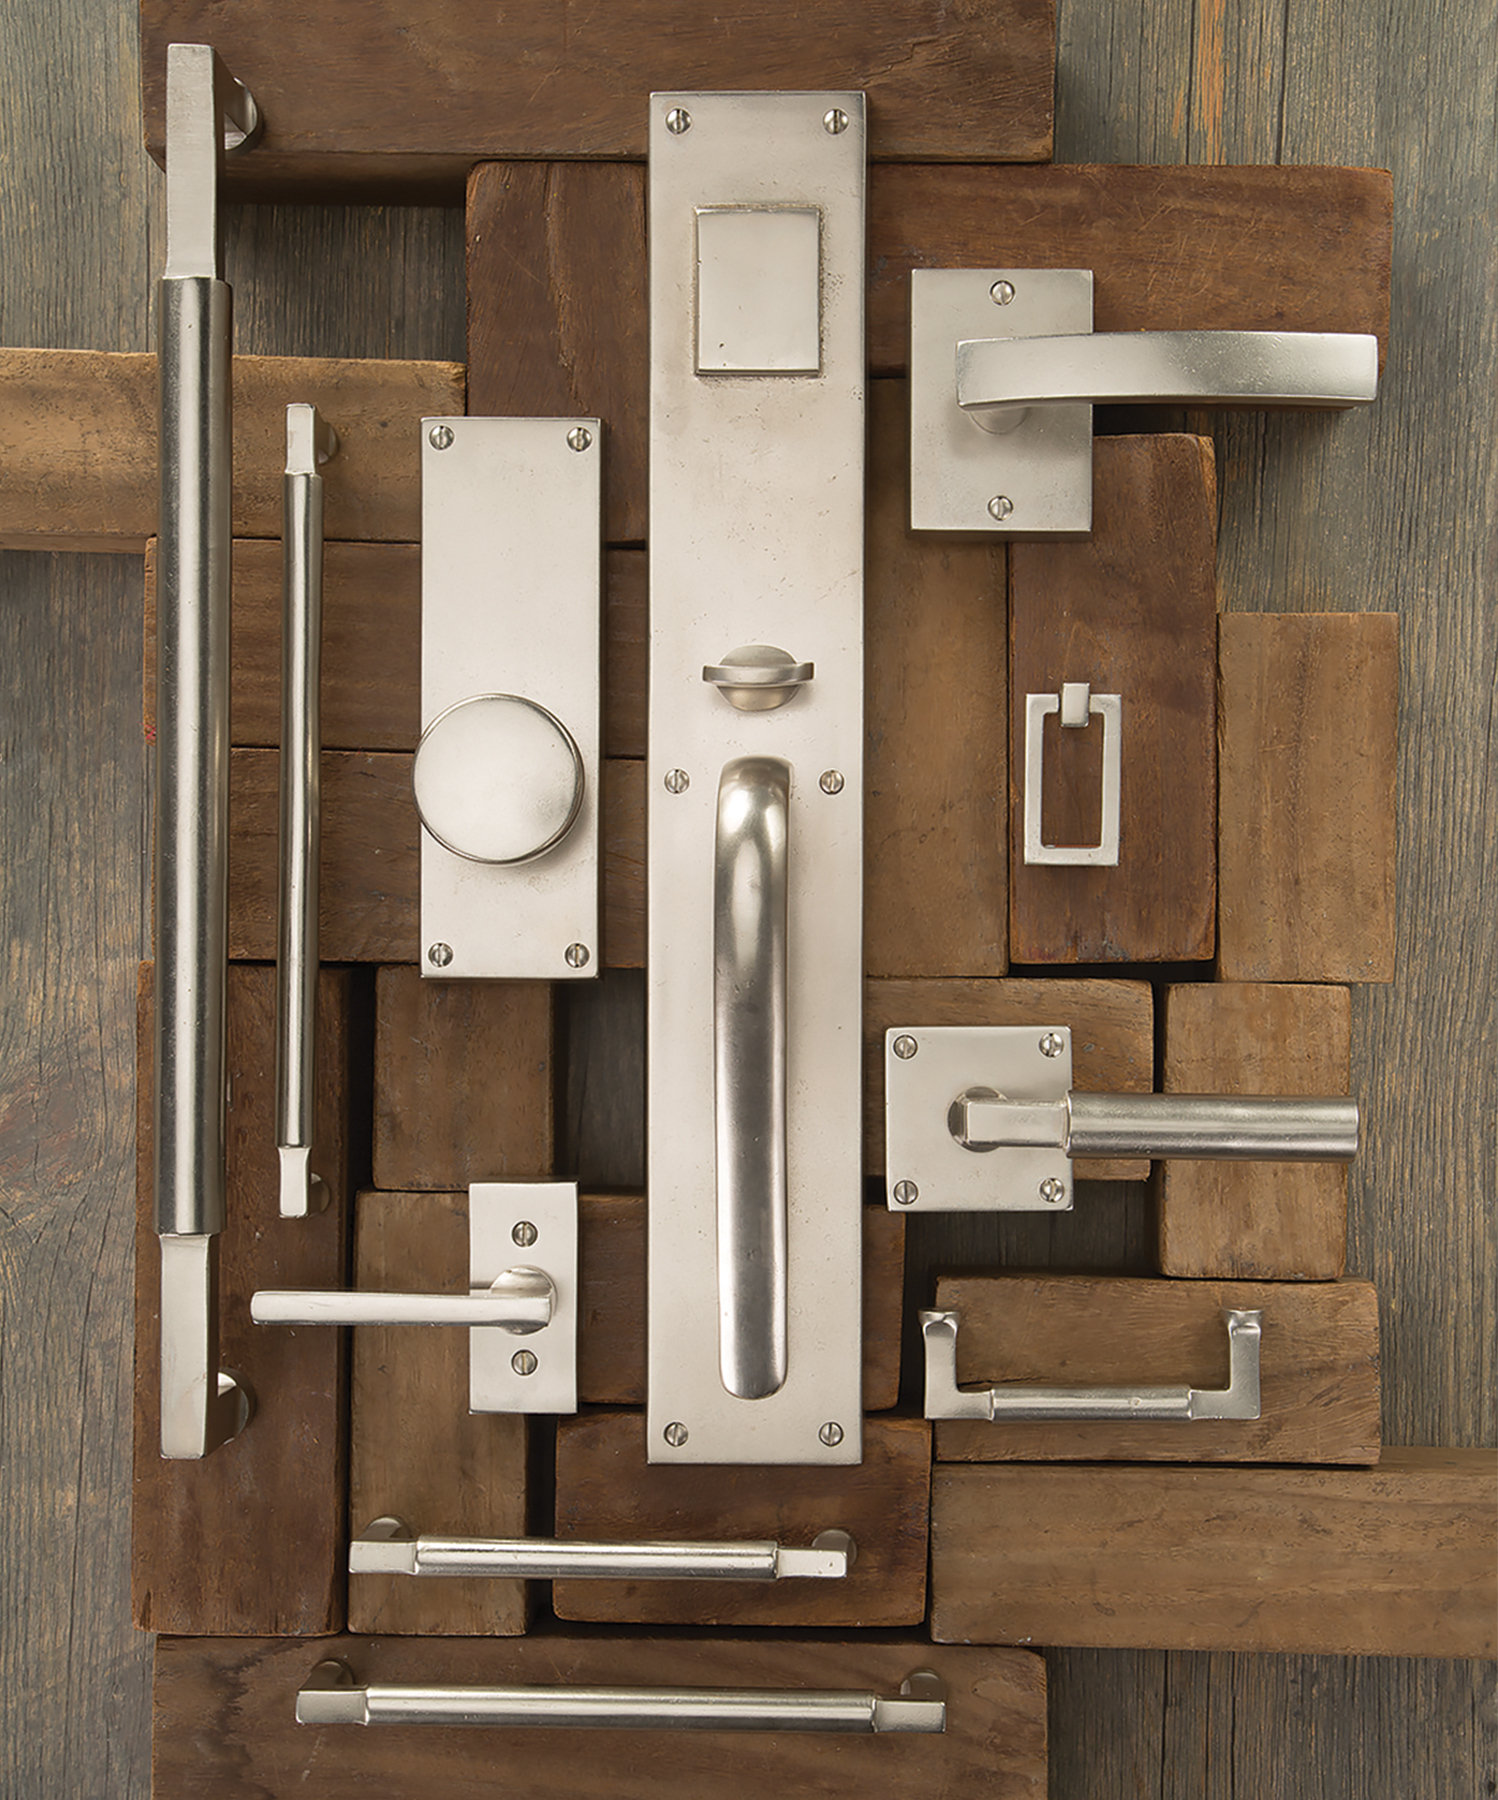 Ashley Norton, designer and manufacturer of architectural hardware, introduced its Urban Suite collection of architectural hardware.